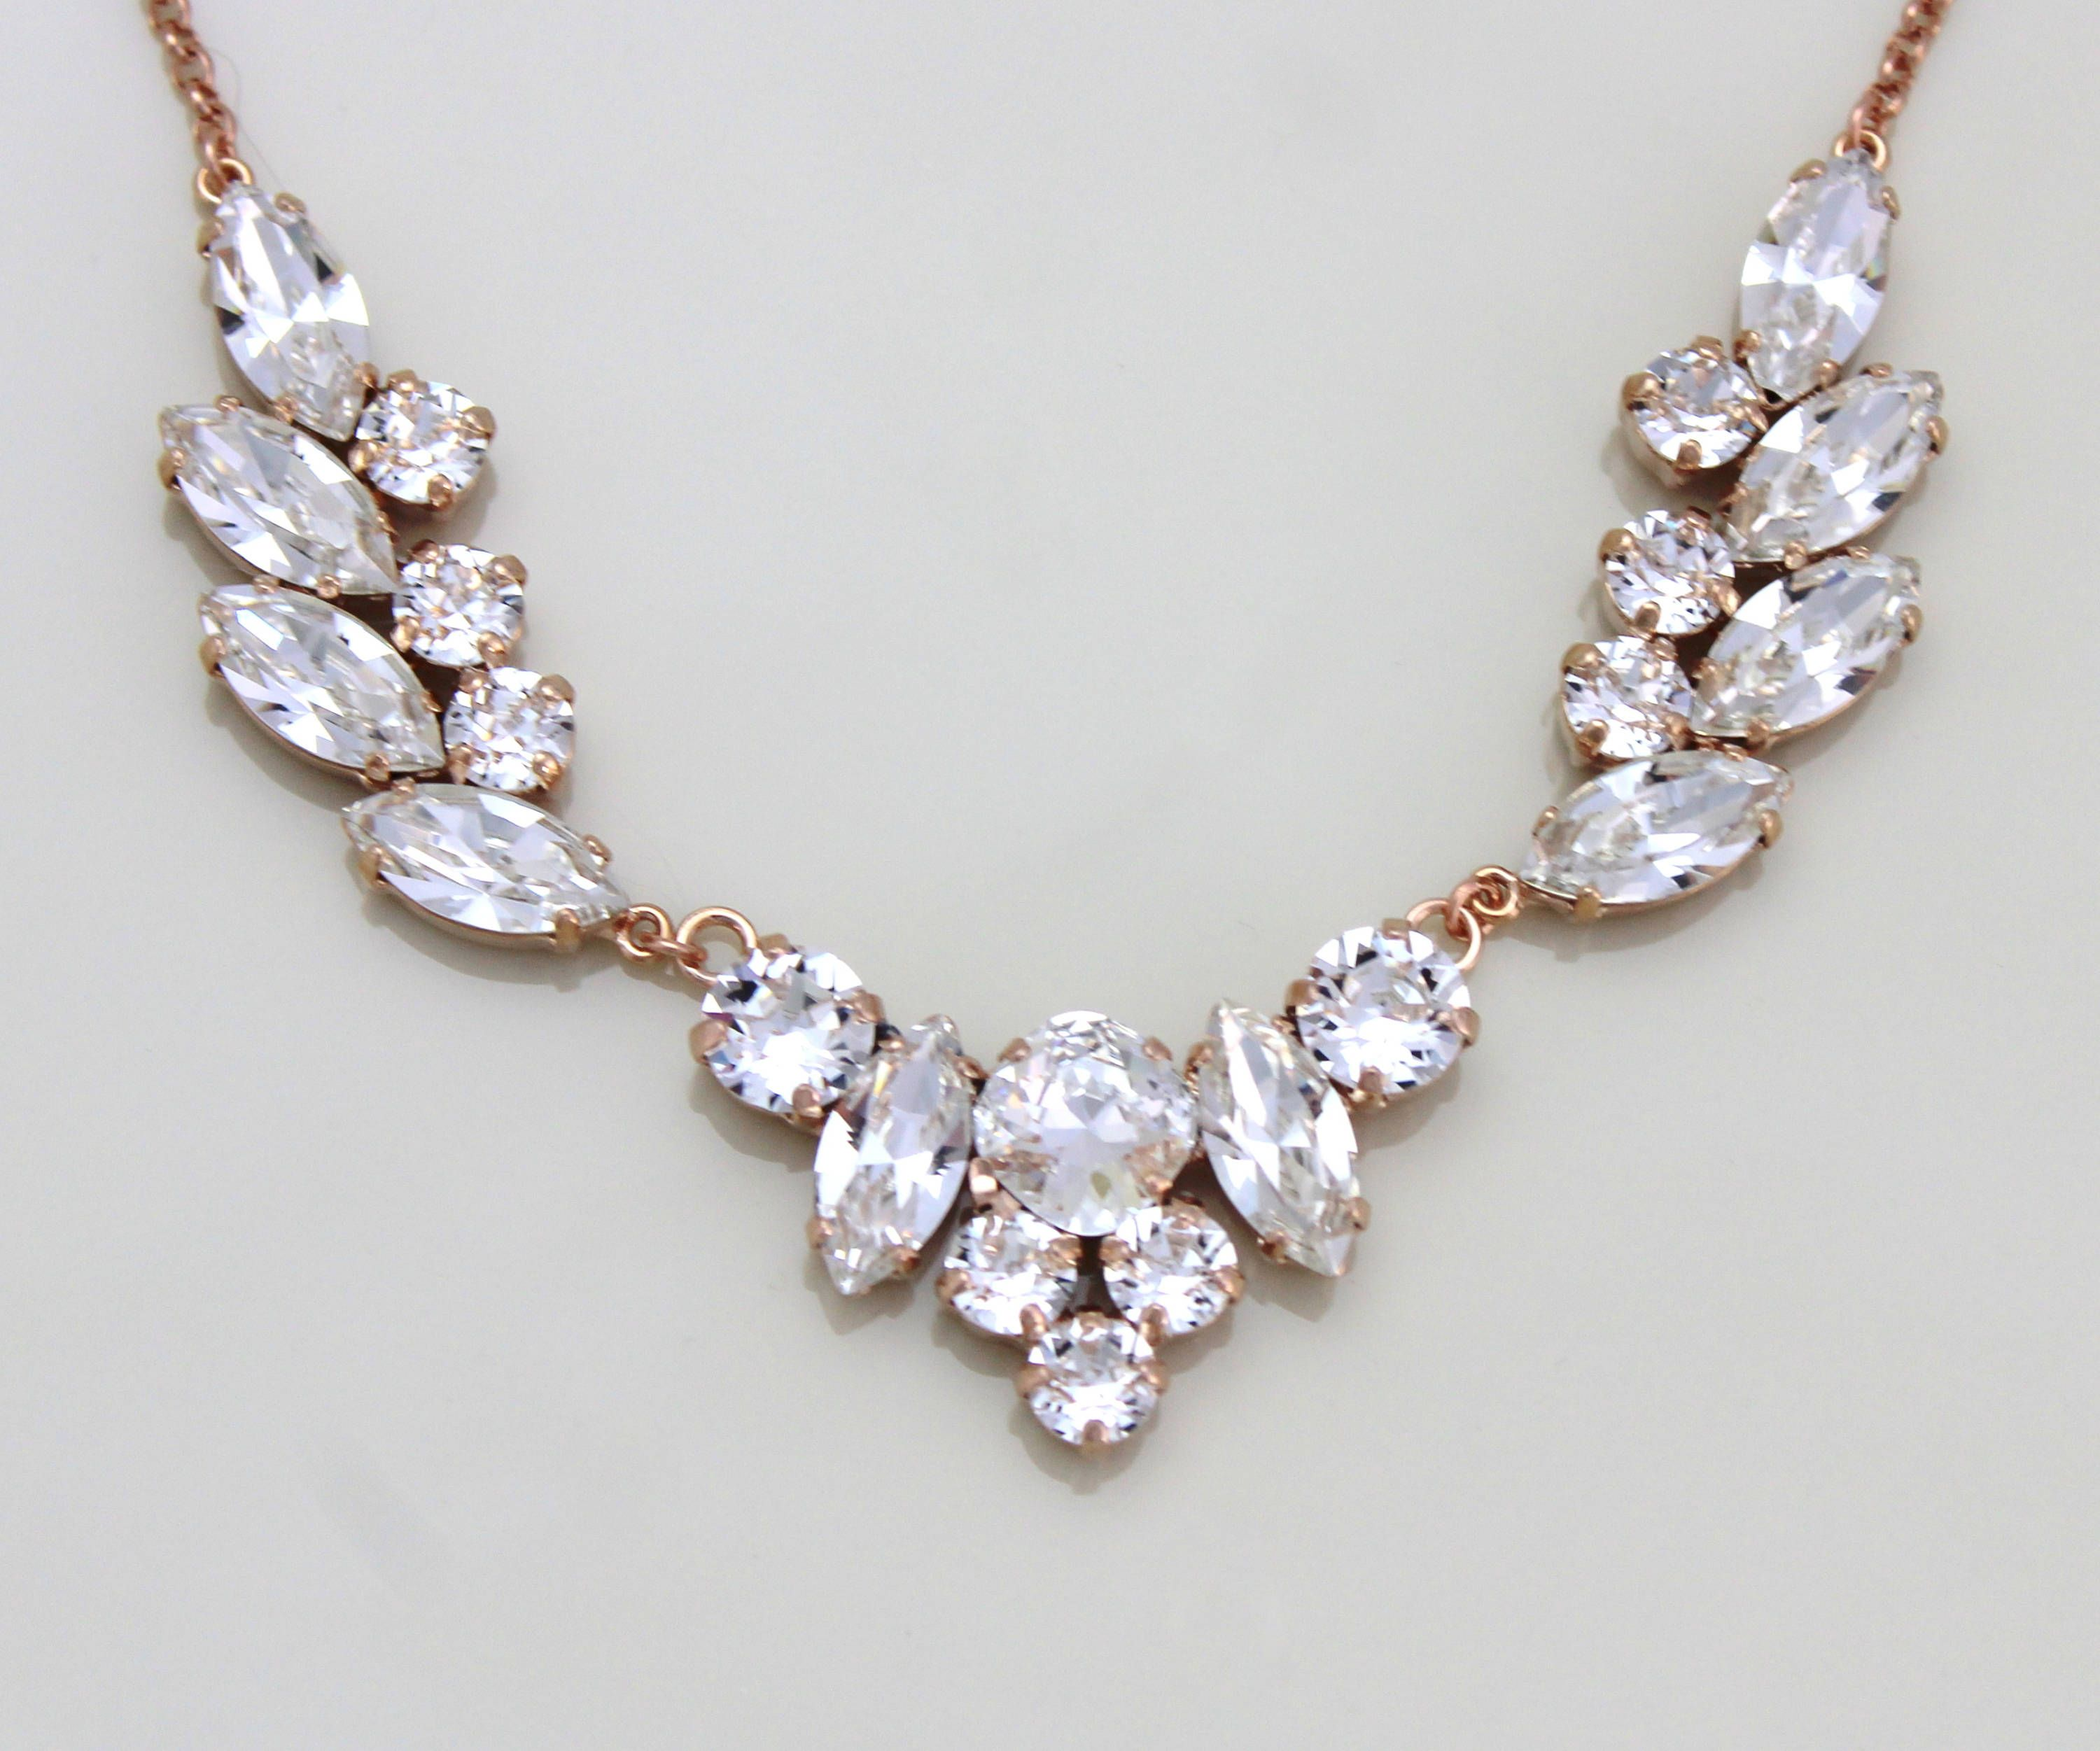 swarovski demetria collection stone bjs bridal necklace jewelry deme wedding product crystal img